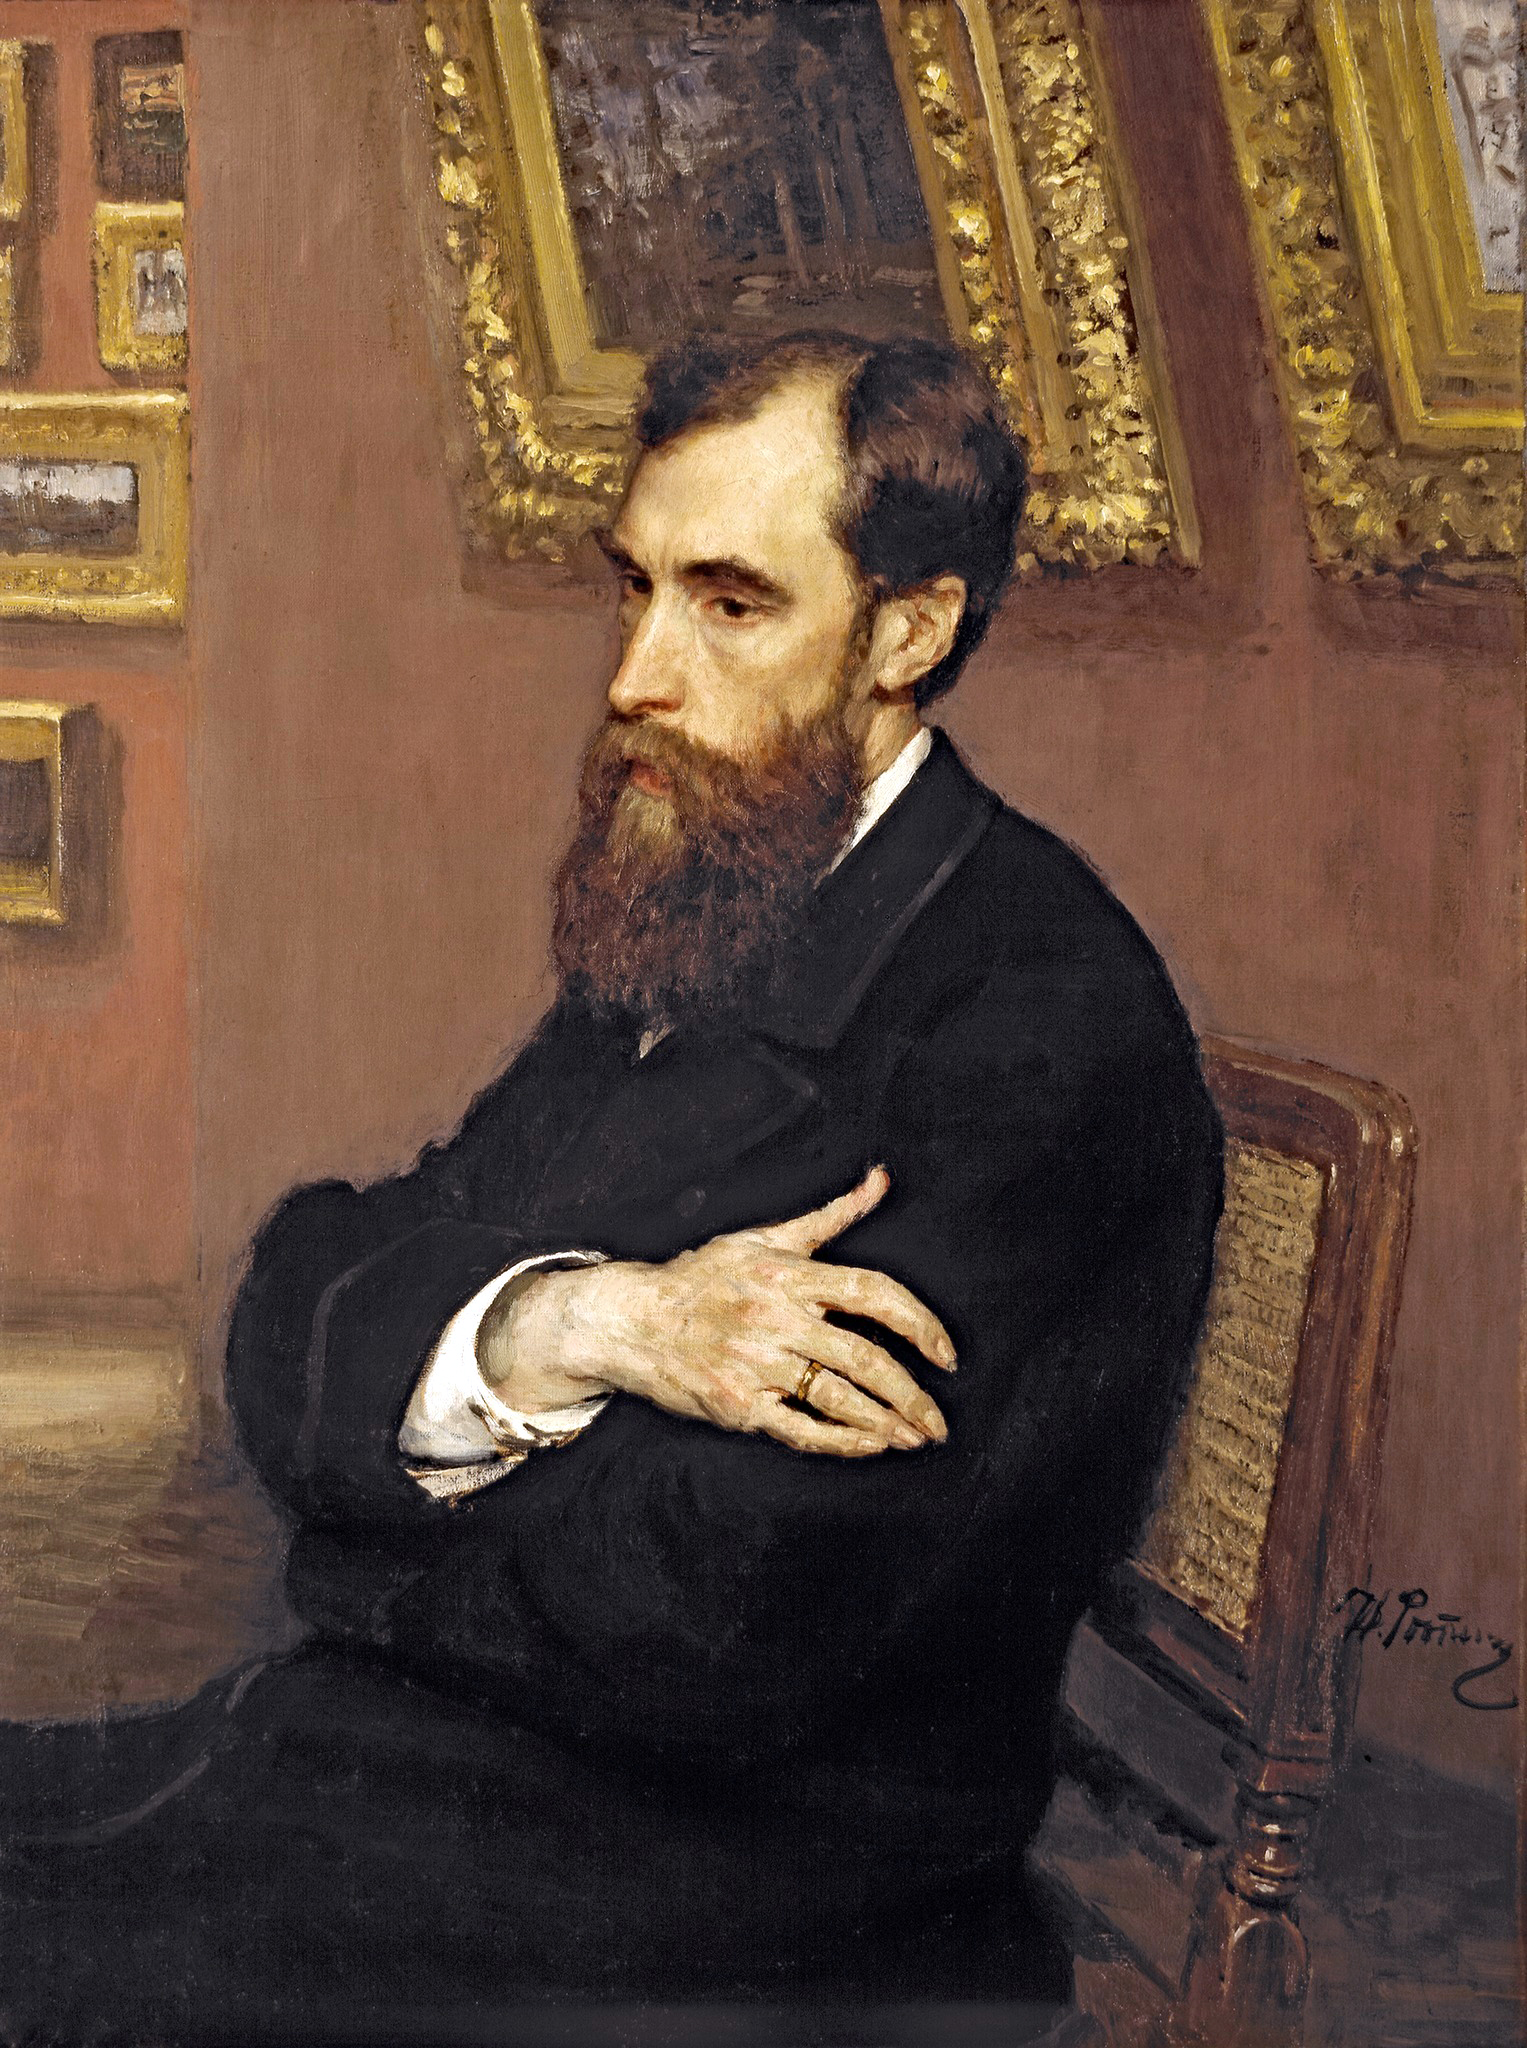 Ilya Repin. Portrait of Pavel Tretyakov. Source: State Tretyakov Gallery